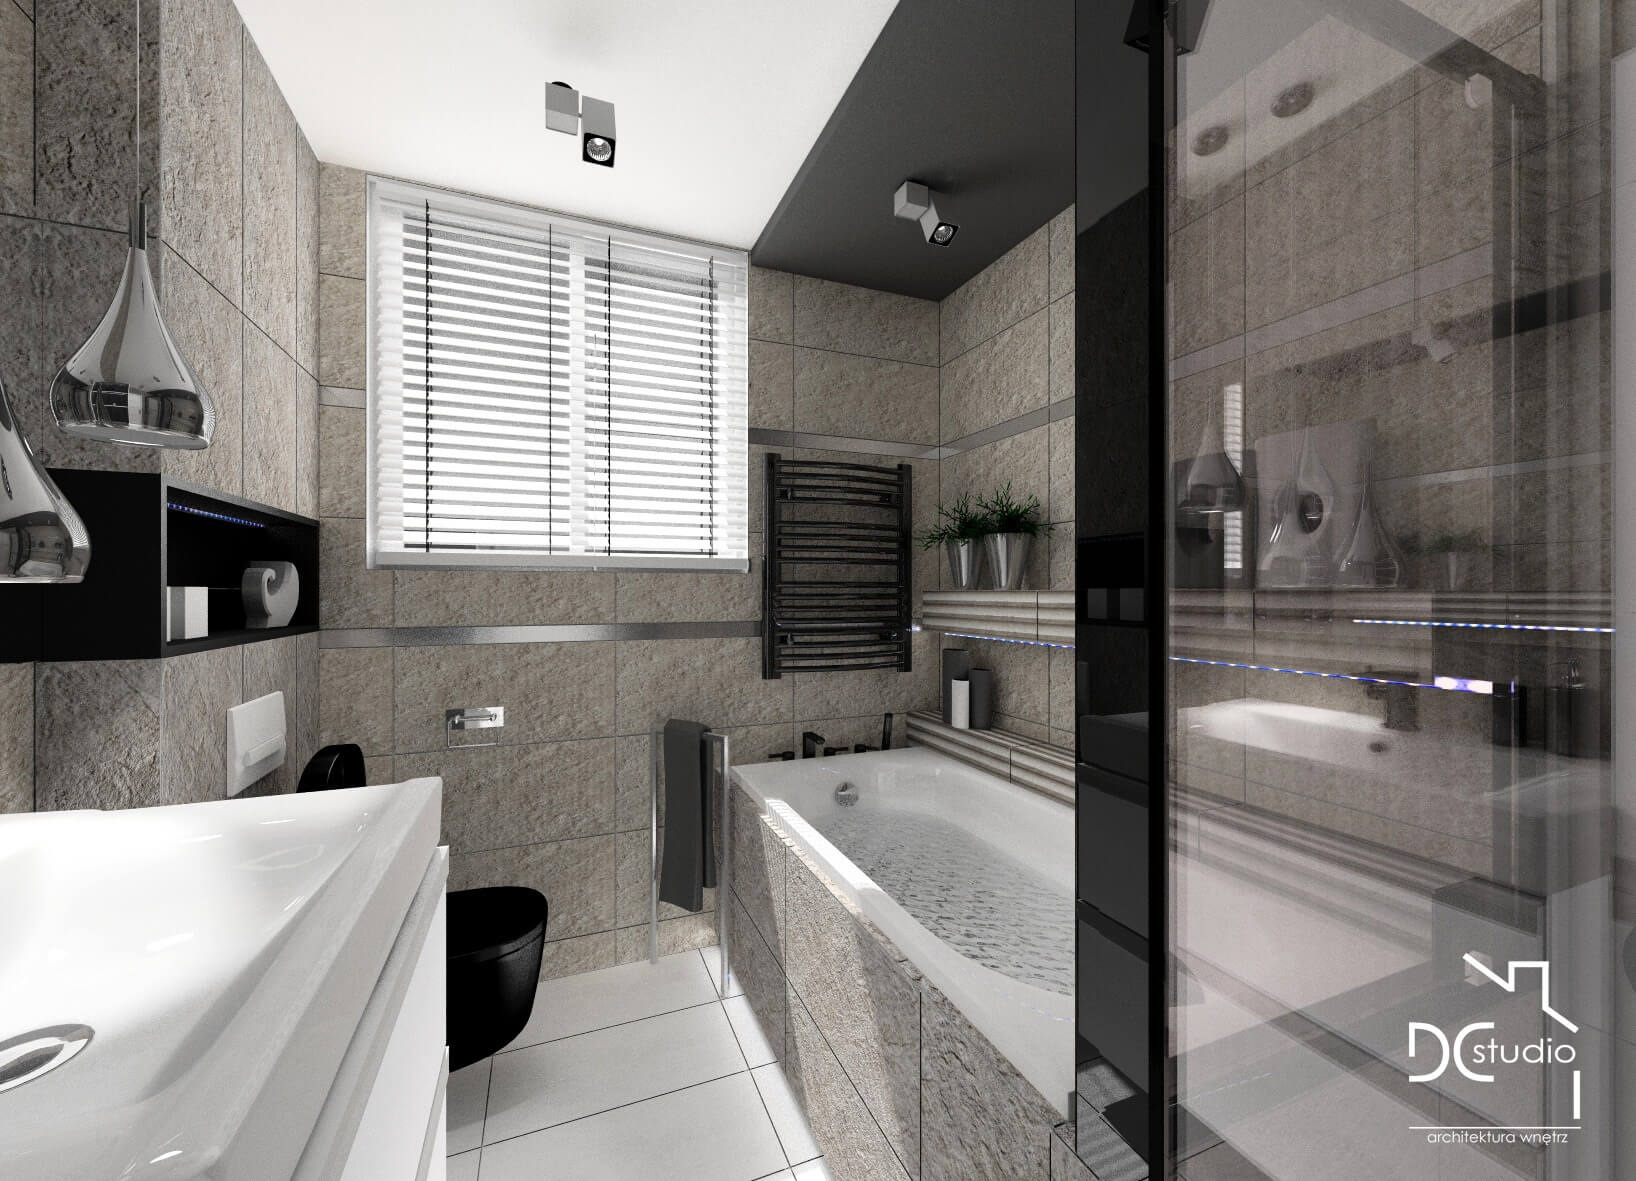 Bathroom in a detached house in shades of beige and black